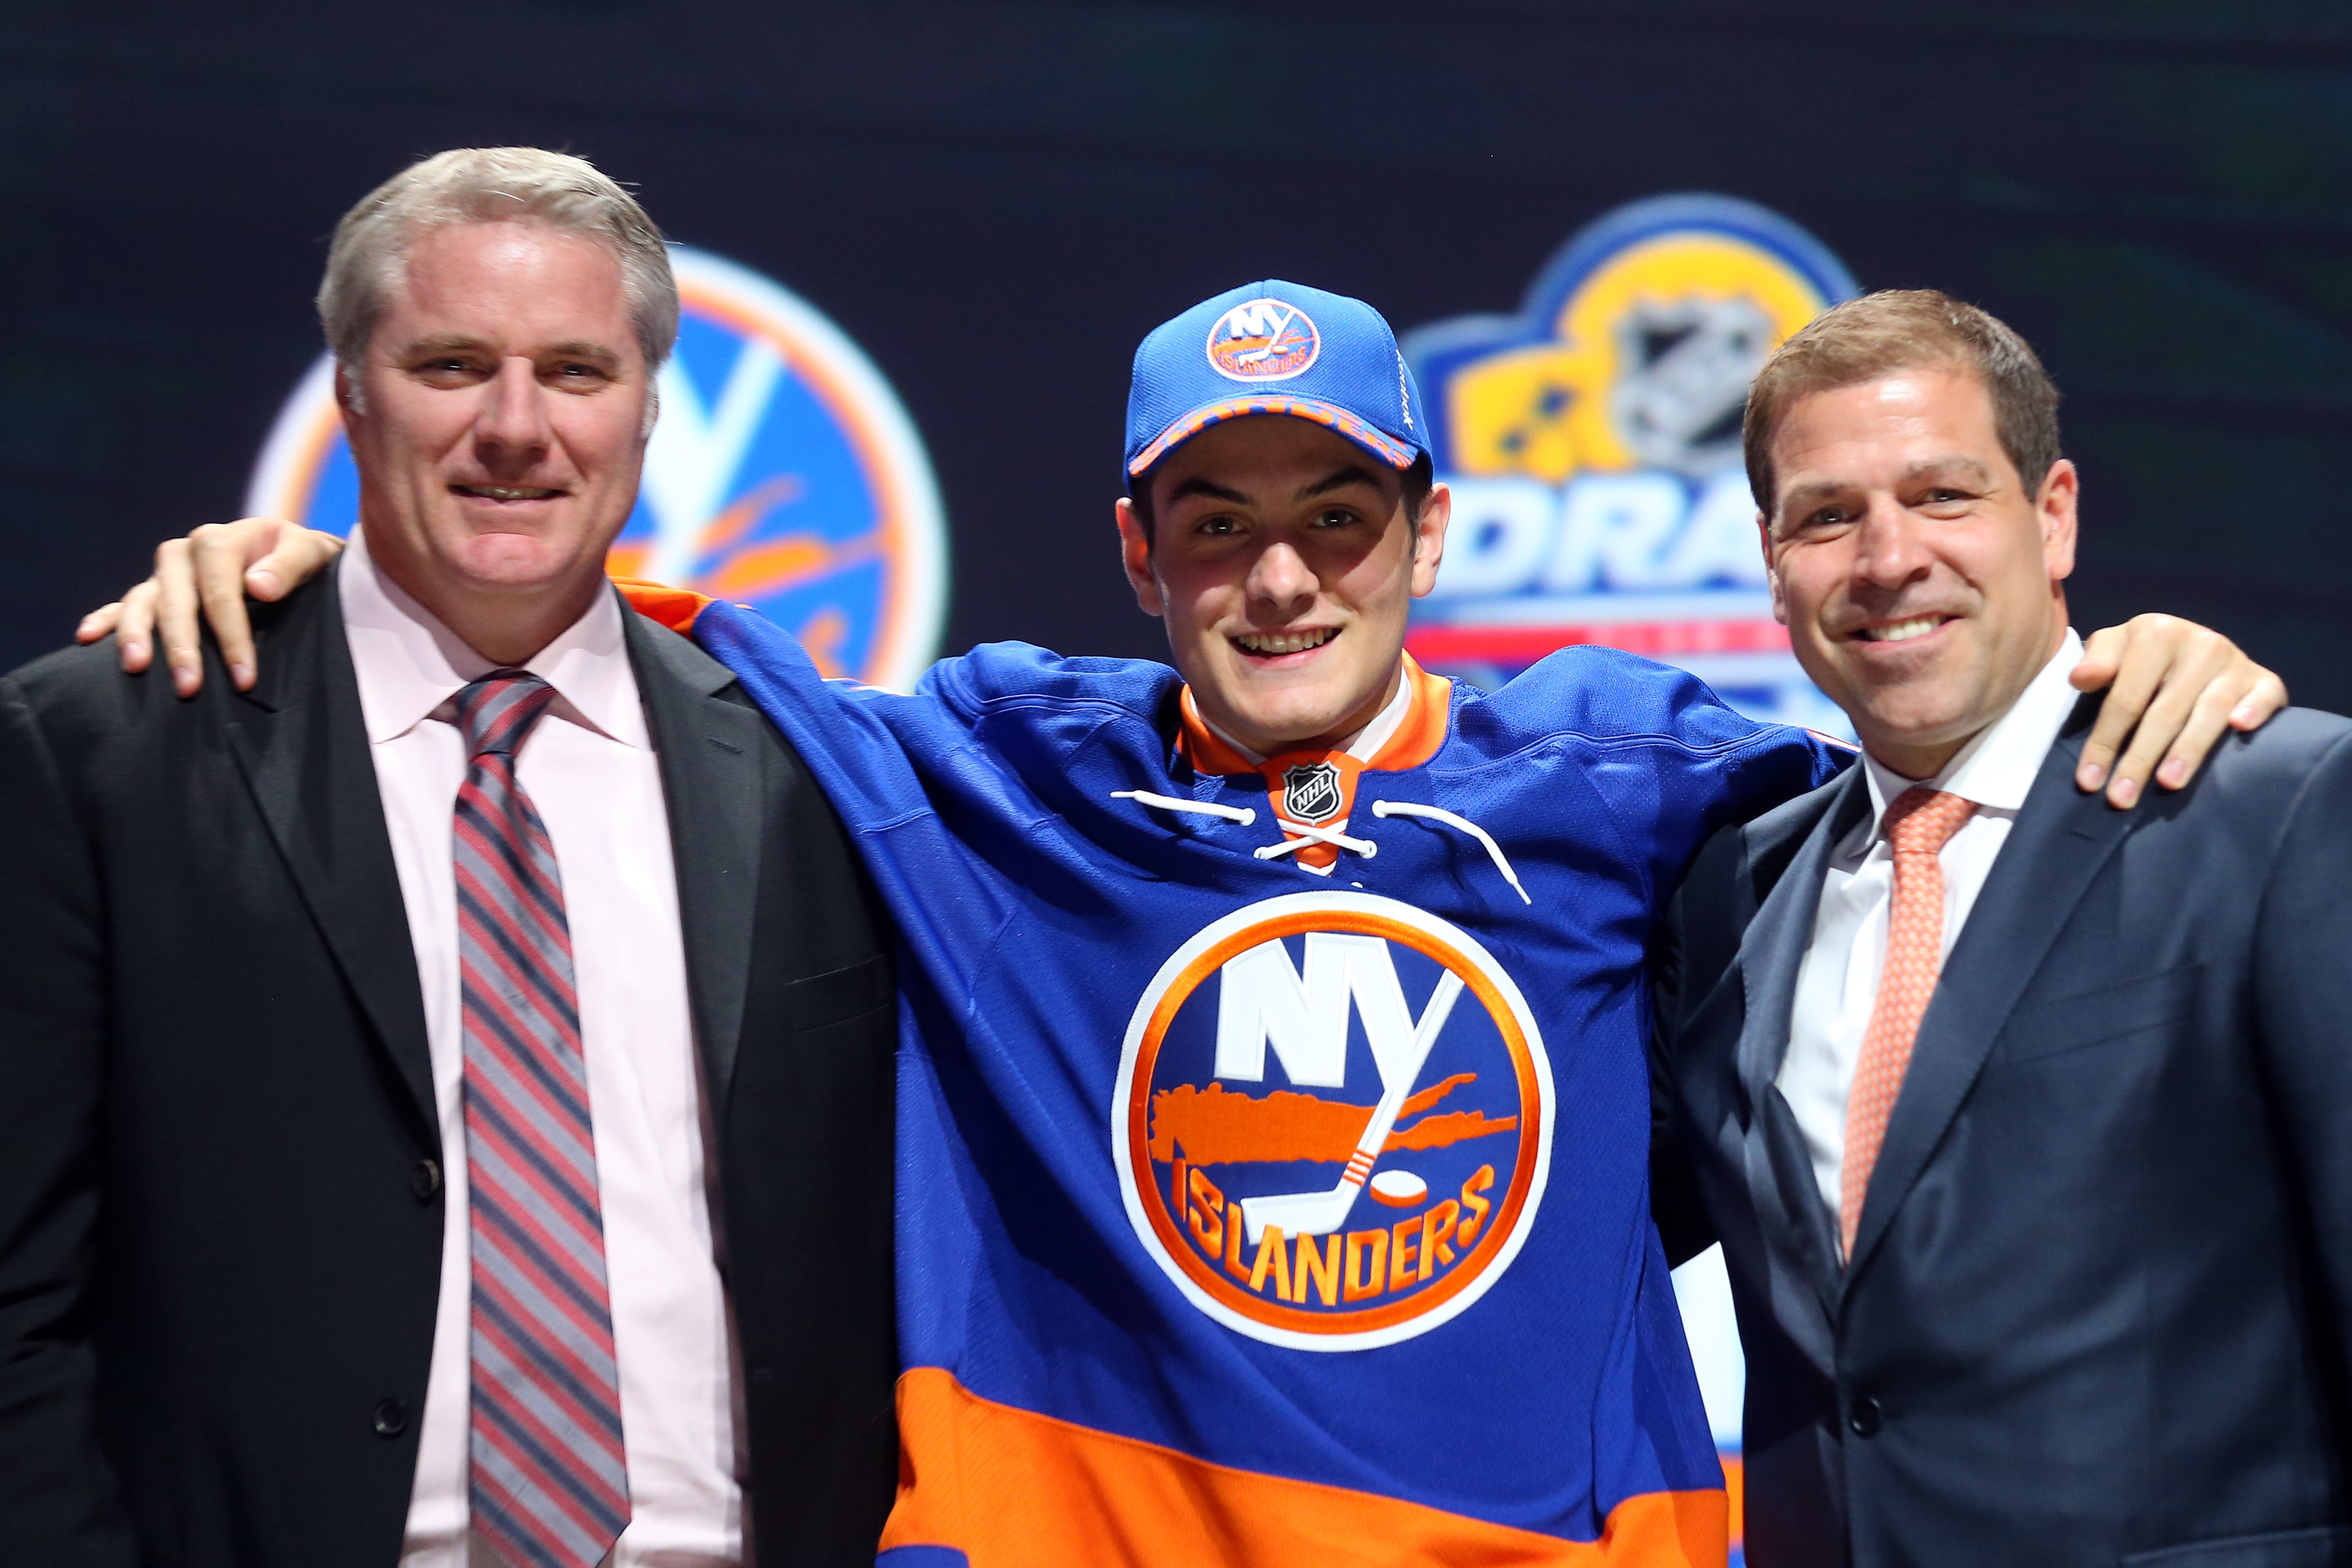 SUNRISE, FL - JUNE 26:  Mathew Barzal poses after being selected 16th overall by the New York Islanders in the first round of the 2015 NHL Draft at BB&T Center on June 26, 2015 in Sunrise, Florida.  (Photo by Bruce Bennett/Getty Images)